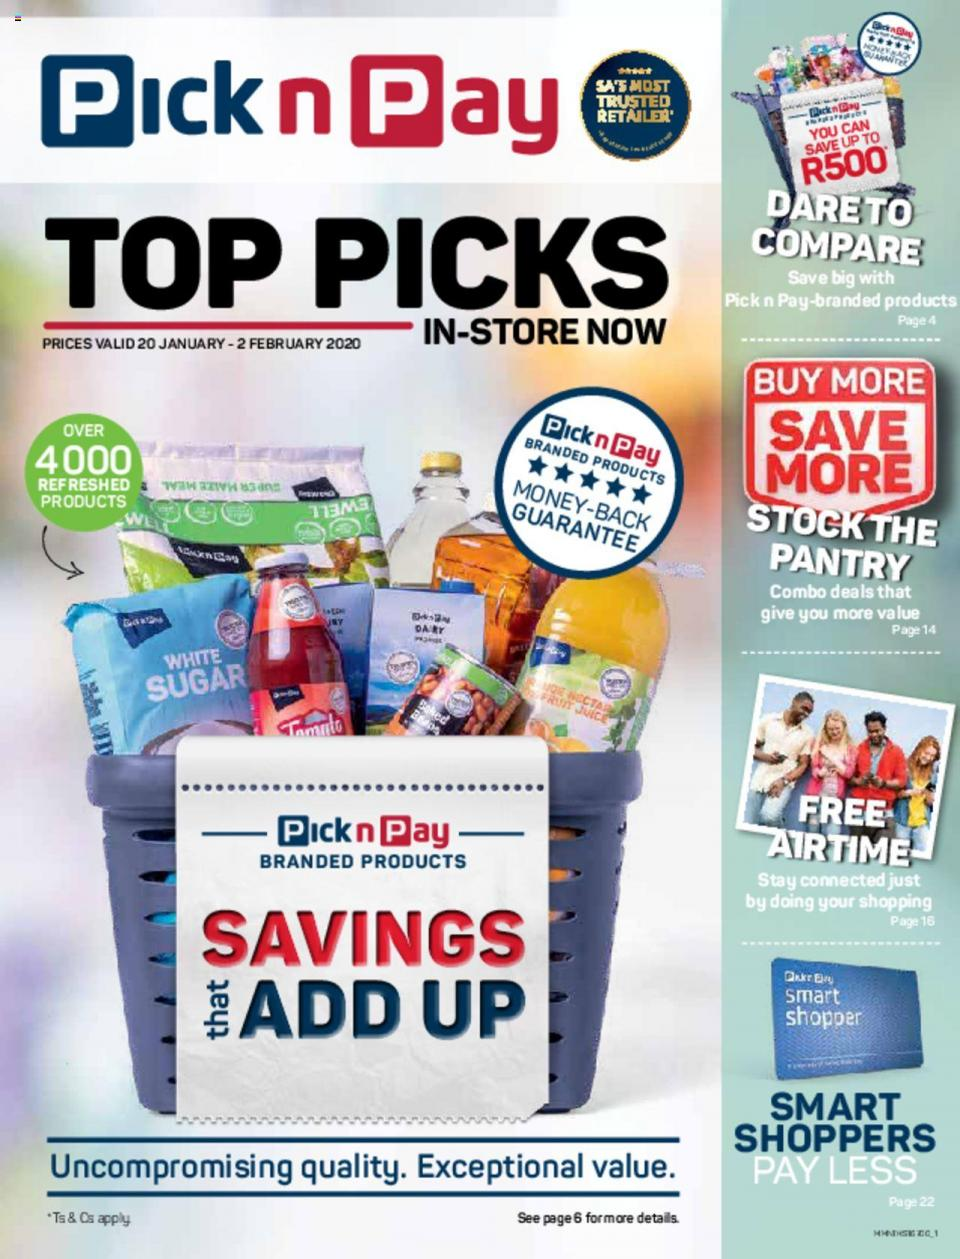 pick n pay specials top picks 20 january 2020